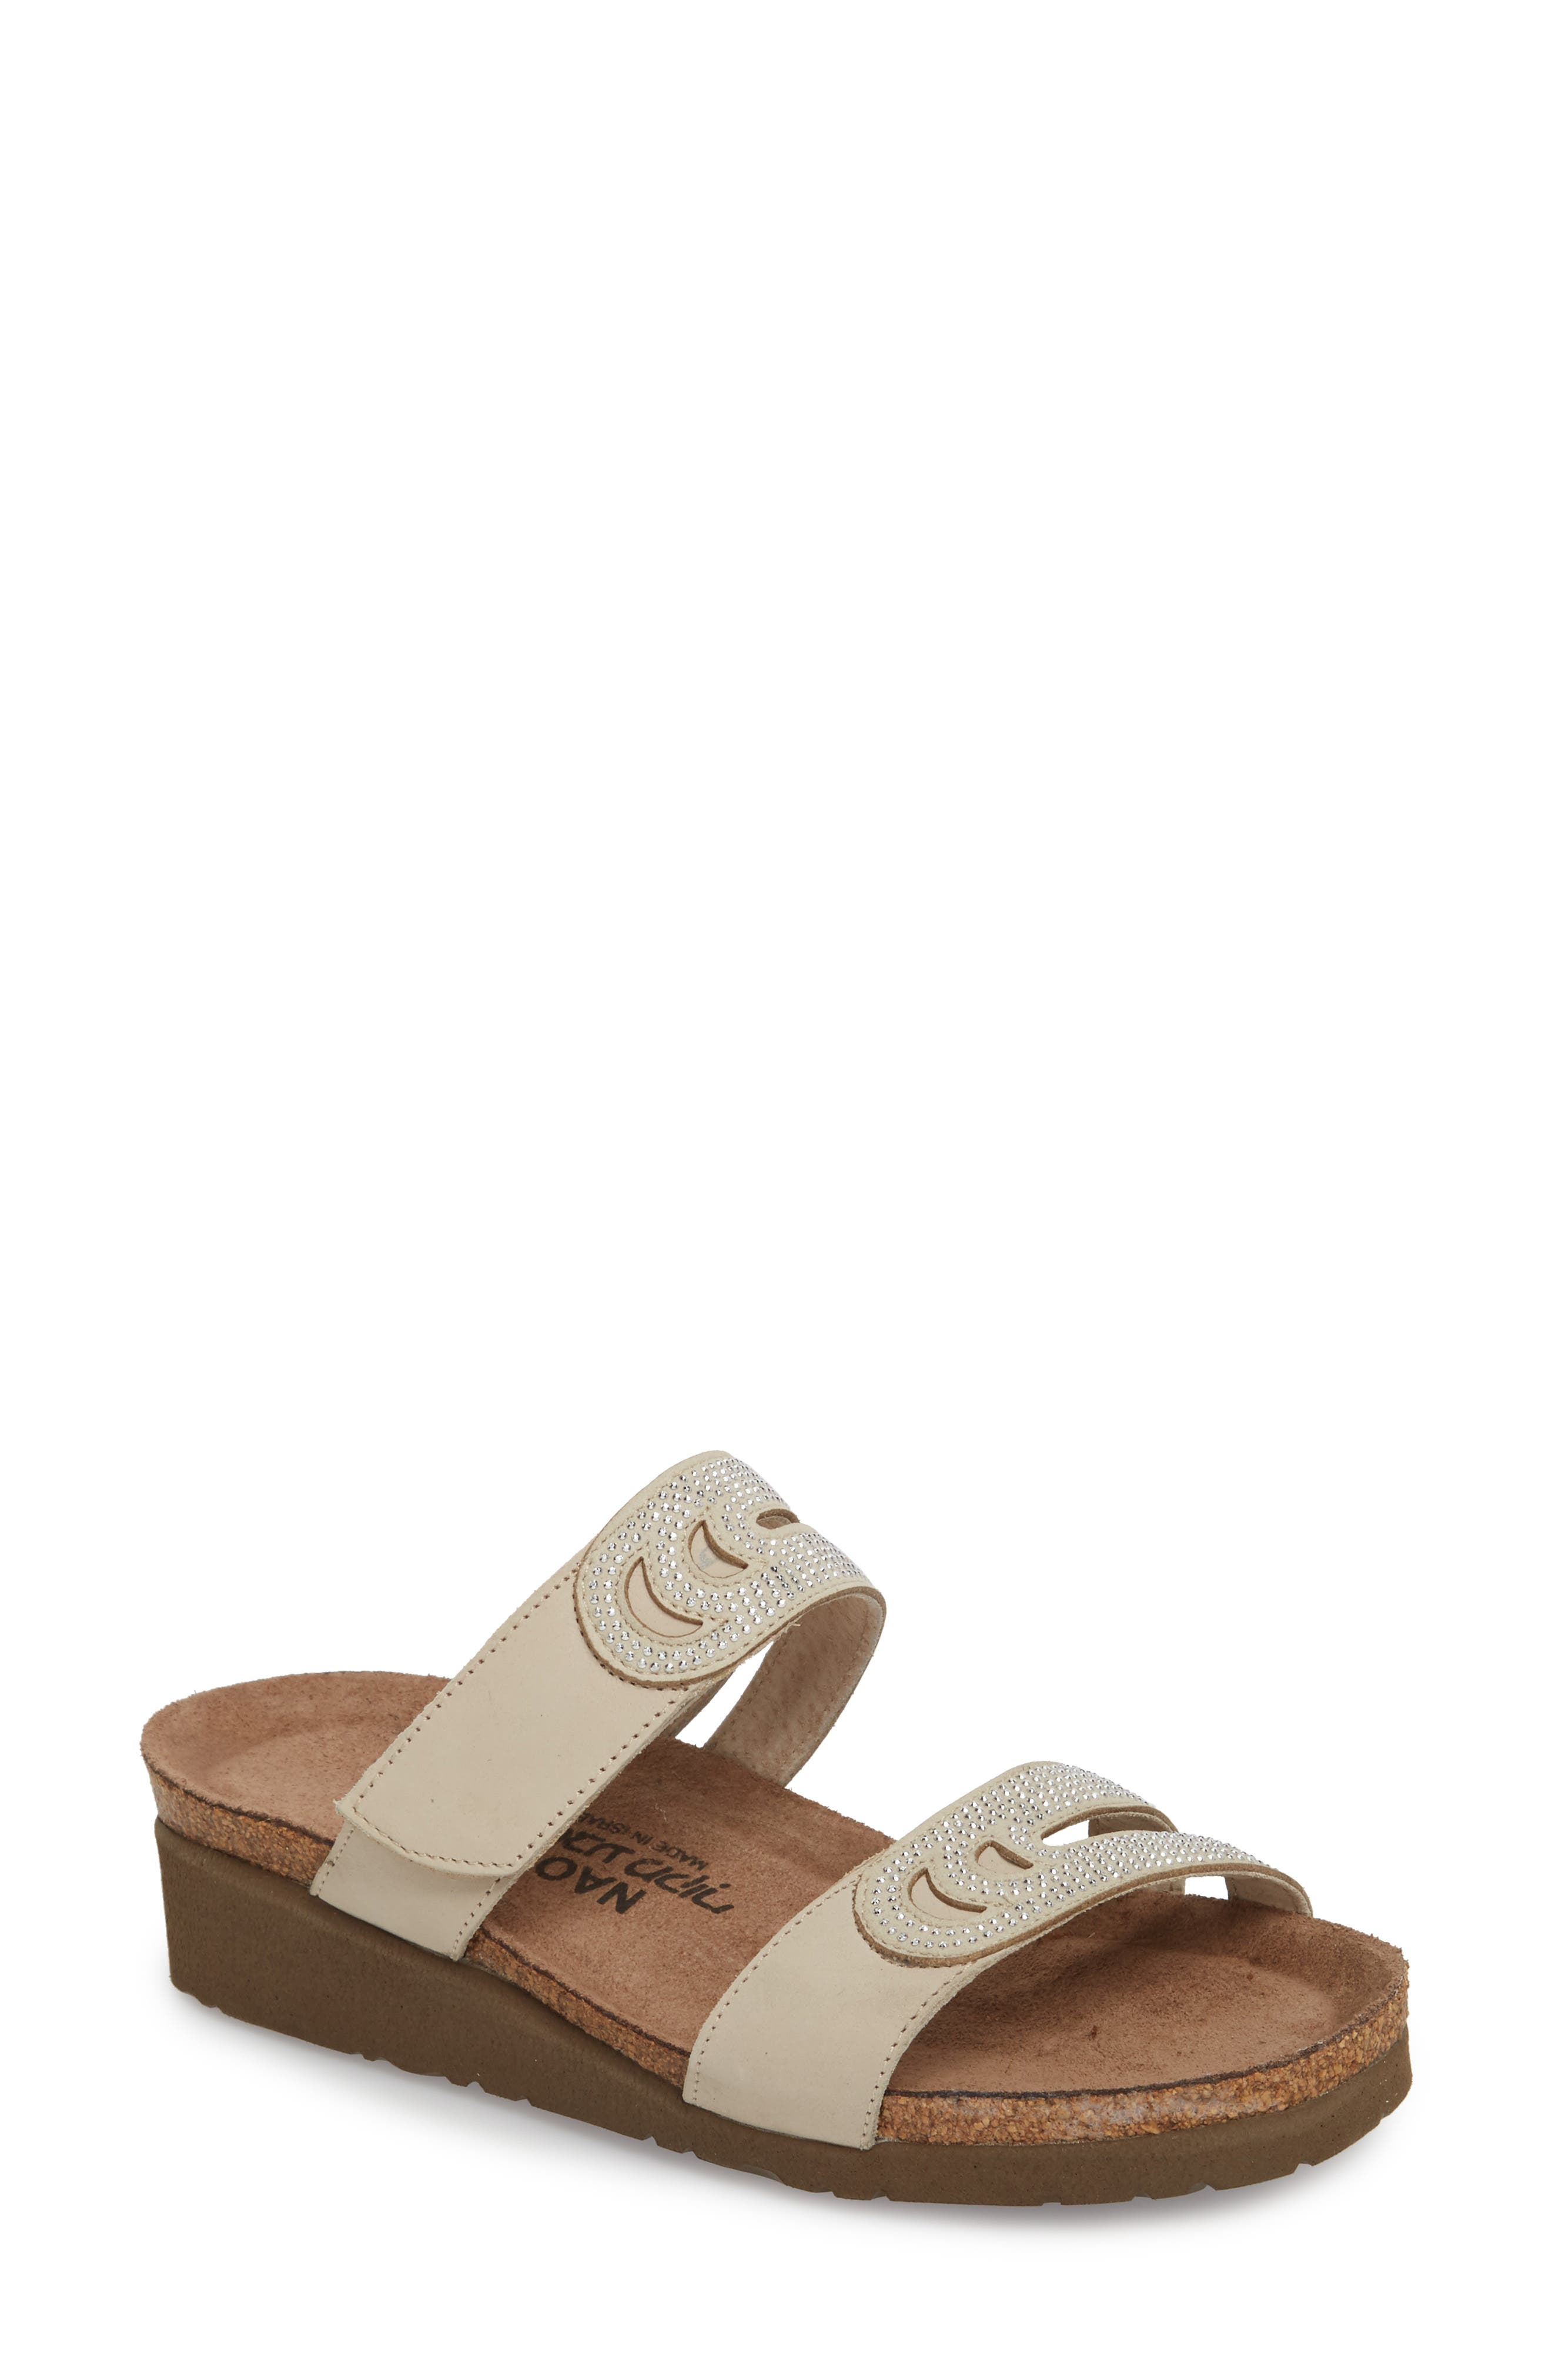 A layered-cork wedge and platform add a little lift to this comfy and completely adjustable slide sandal. The shock-absorbing, memory foam-cushioned footbed pampers your foot with every step you take. Style Name: Naot Ainsley Studded Slide Sandal (Women). Style Number: 5489715. Available in stores.